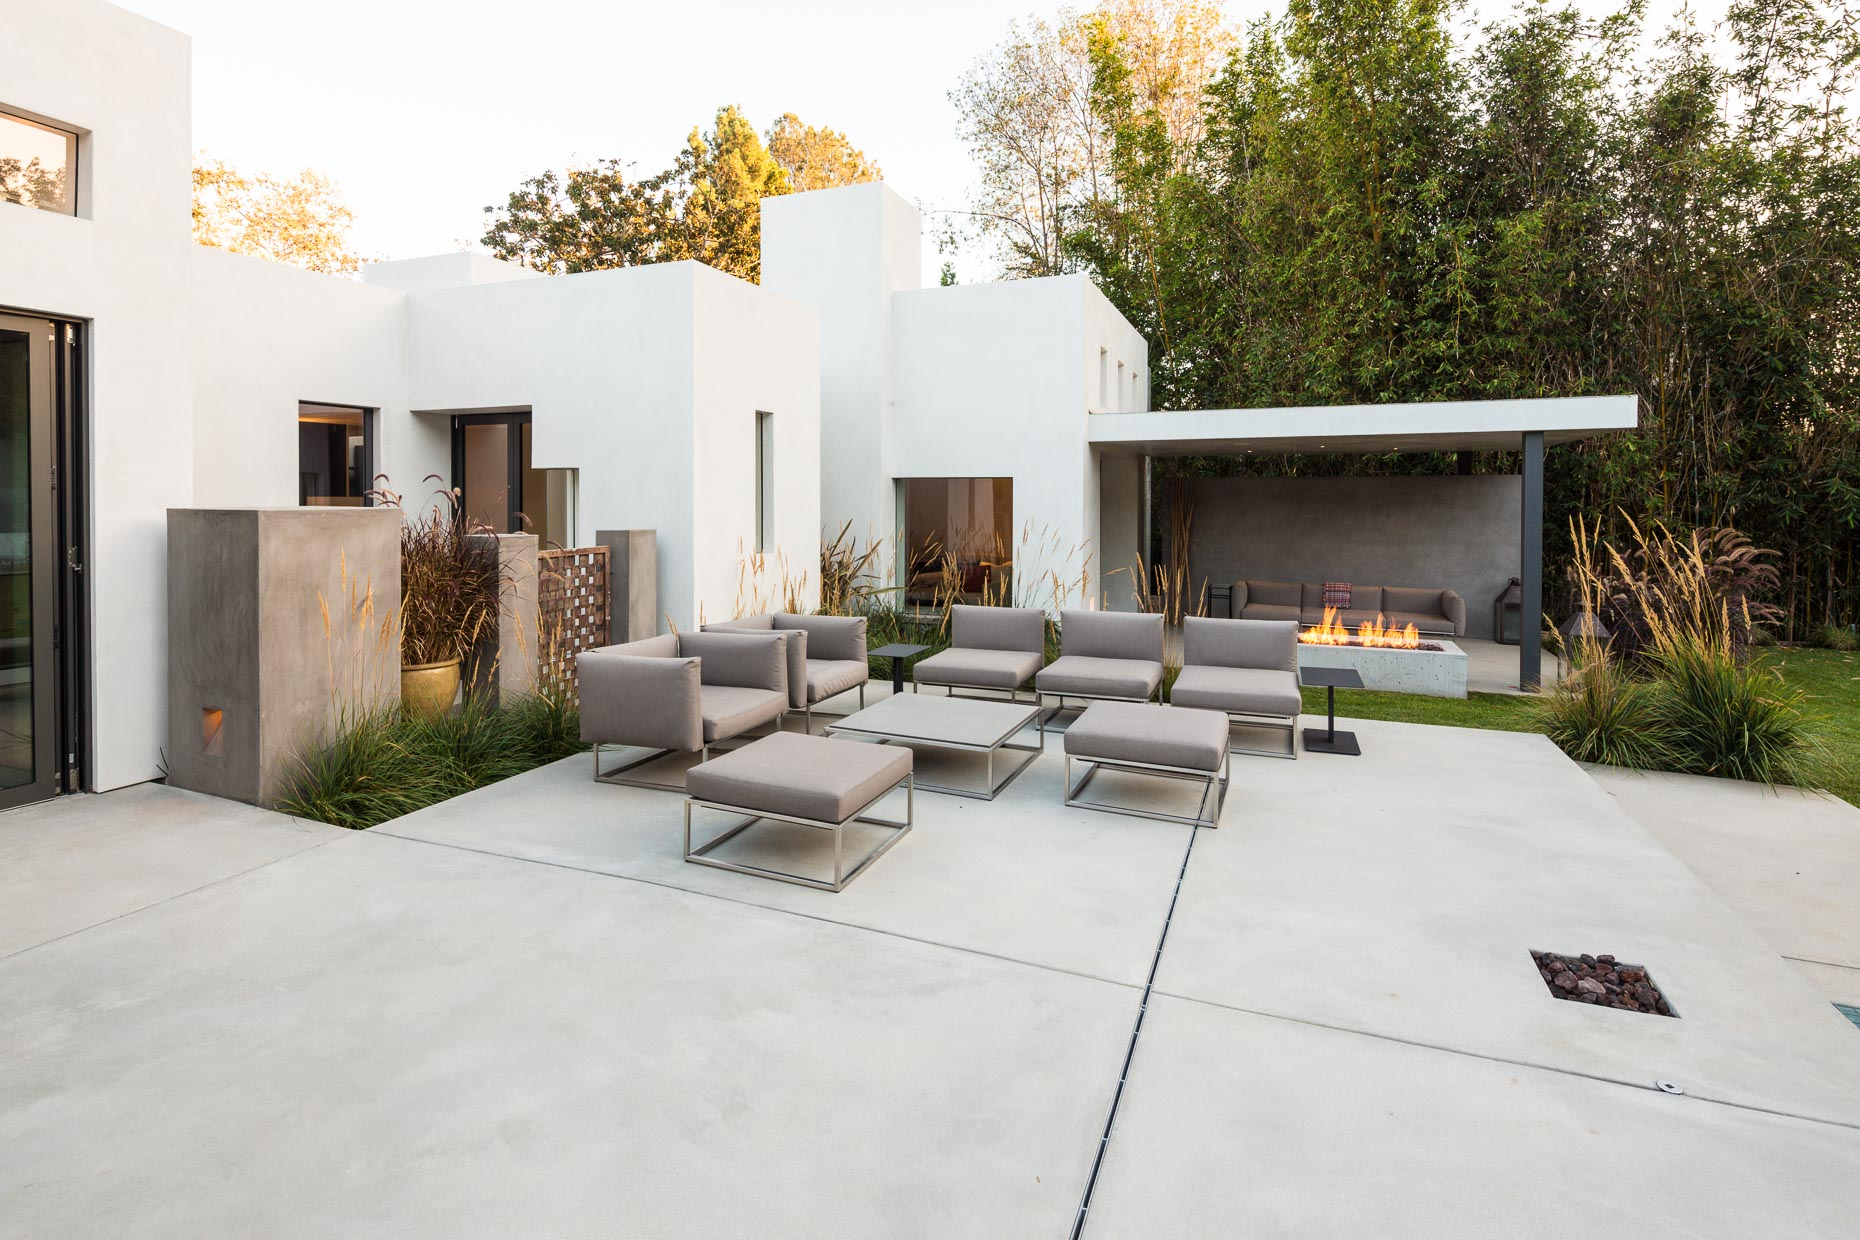 Patio of estate in Los Angeles, California by David Zaitz